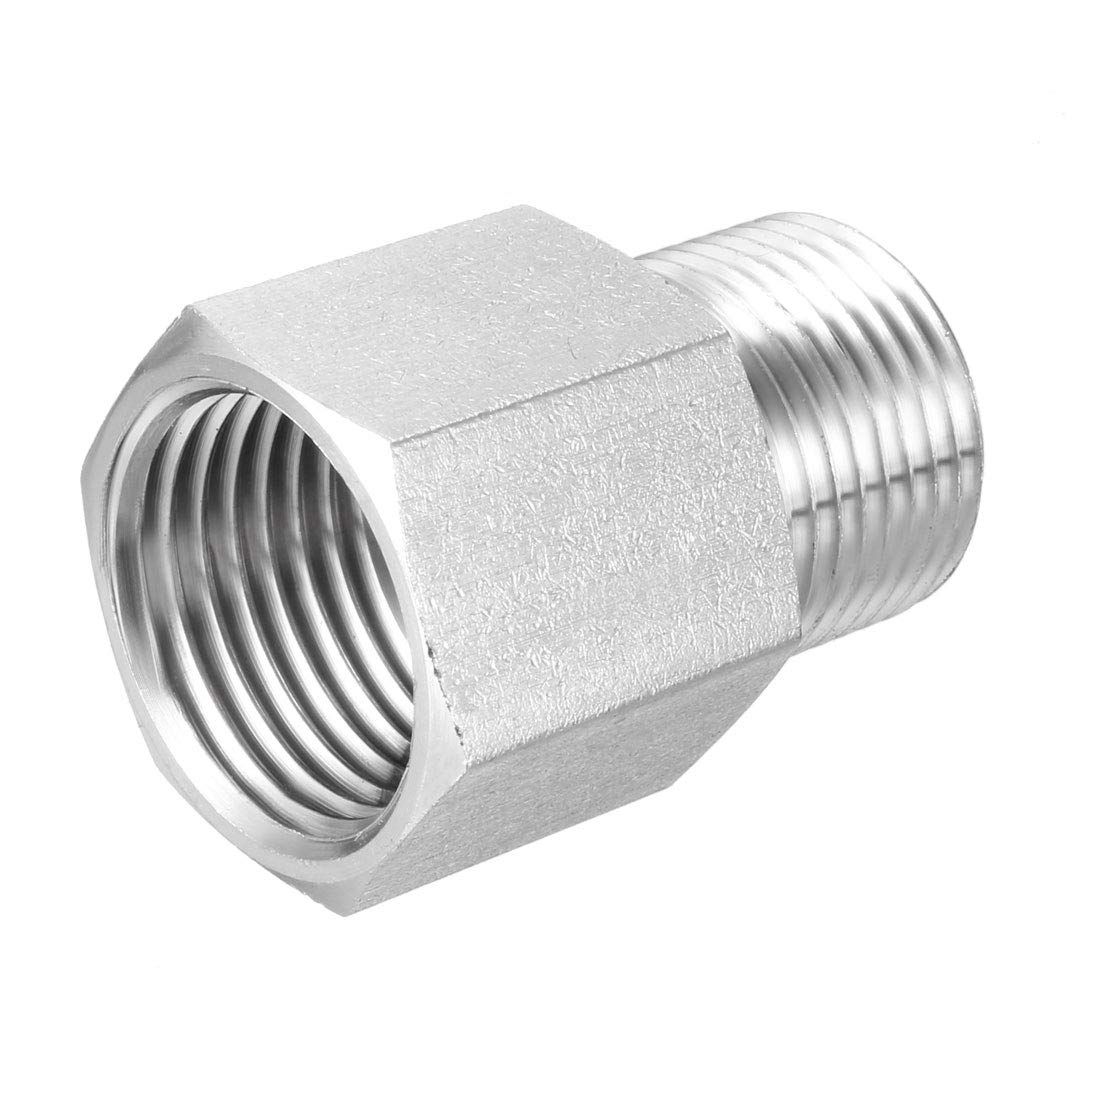 uxcell Reducing Pipe Fitting Reducer Adapter M20X1.5 Male x 1//2-inch NPT Female